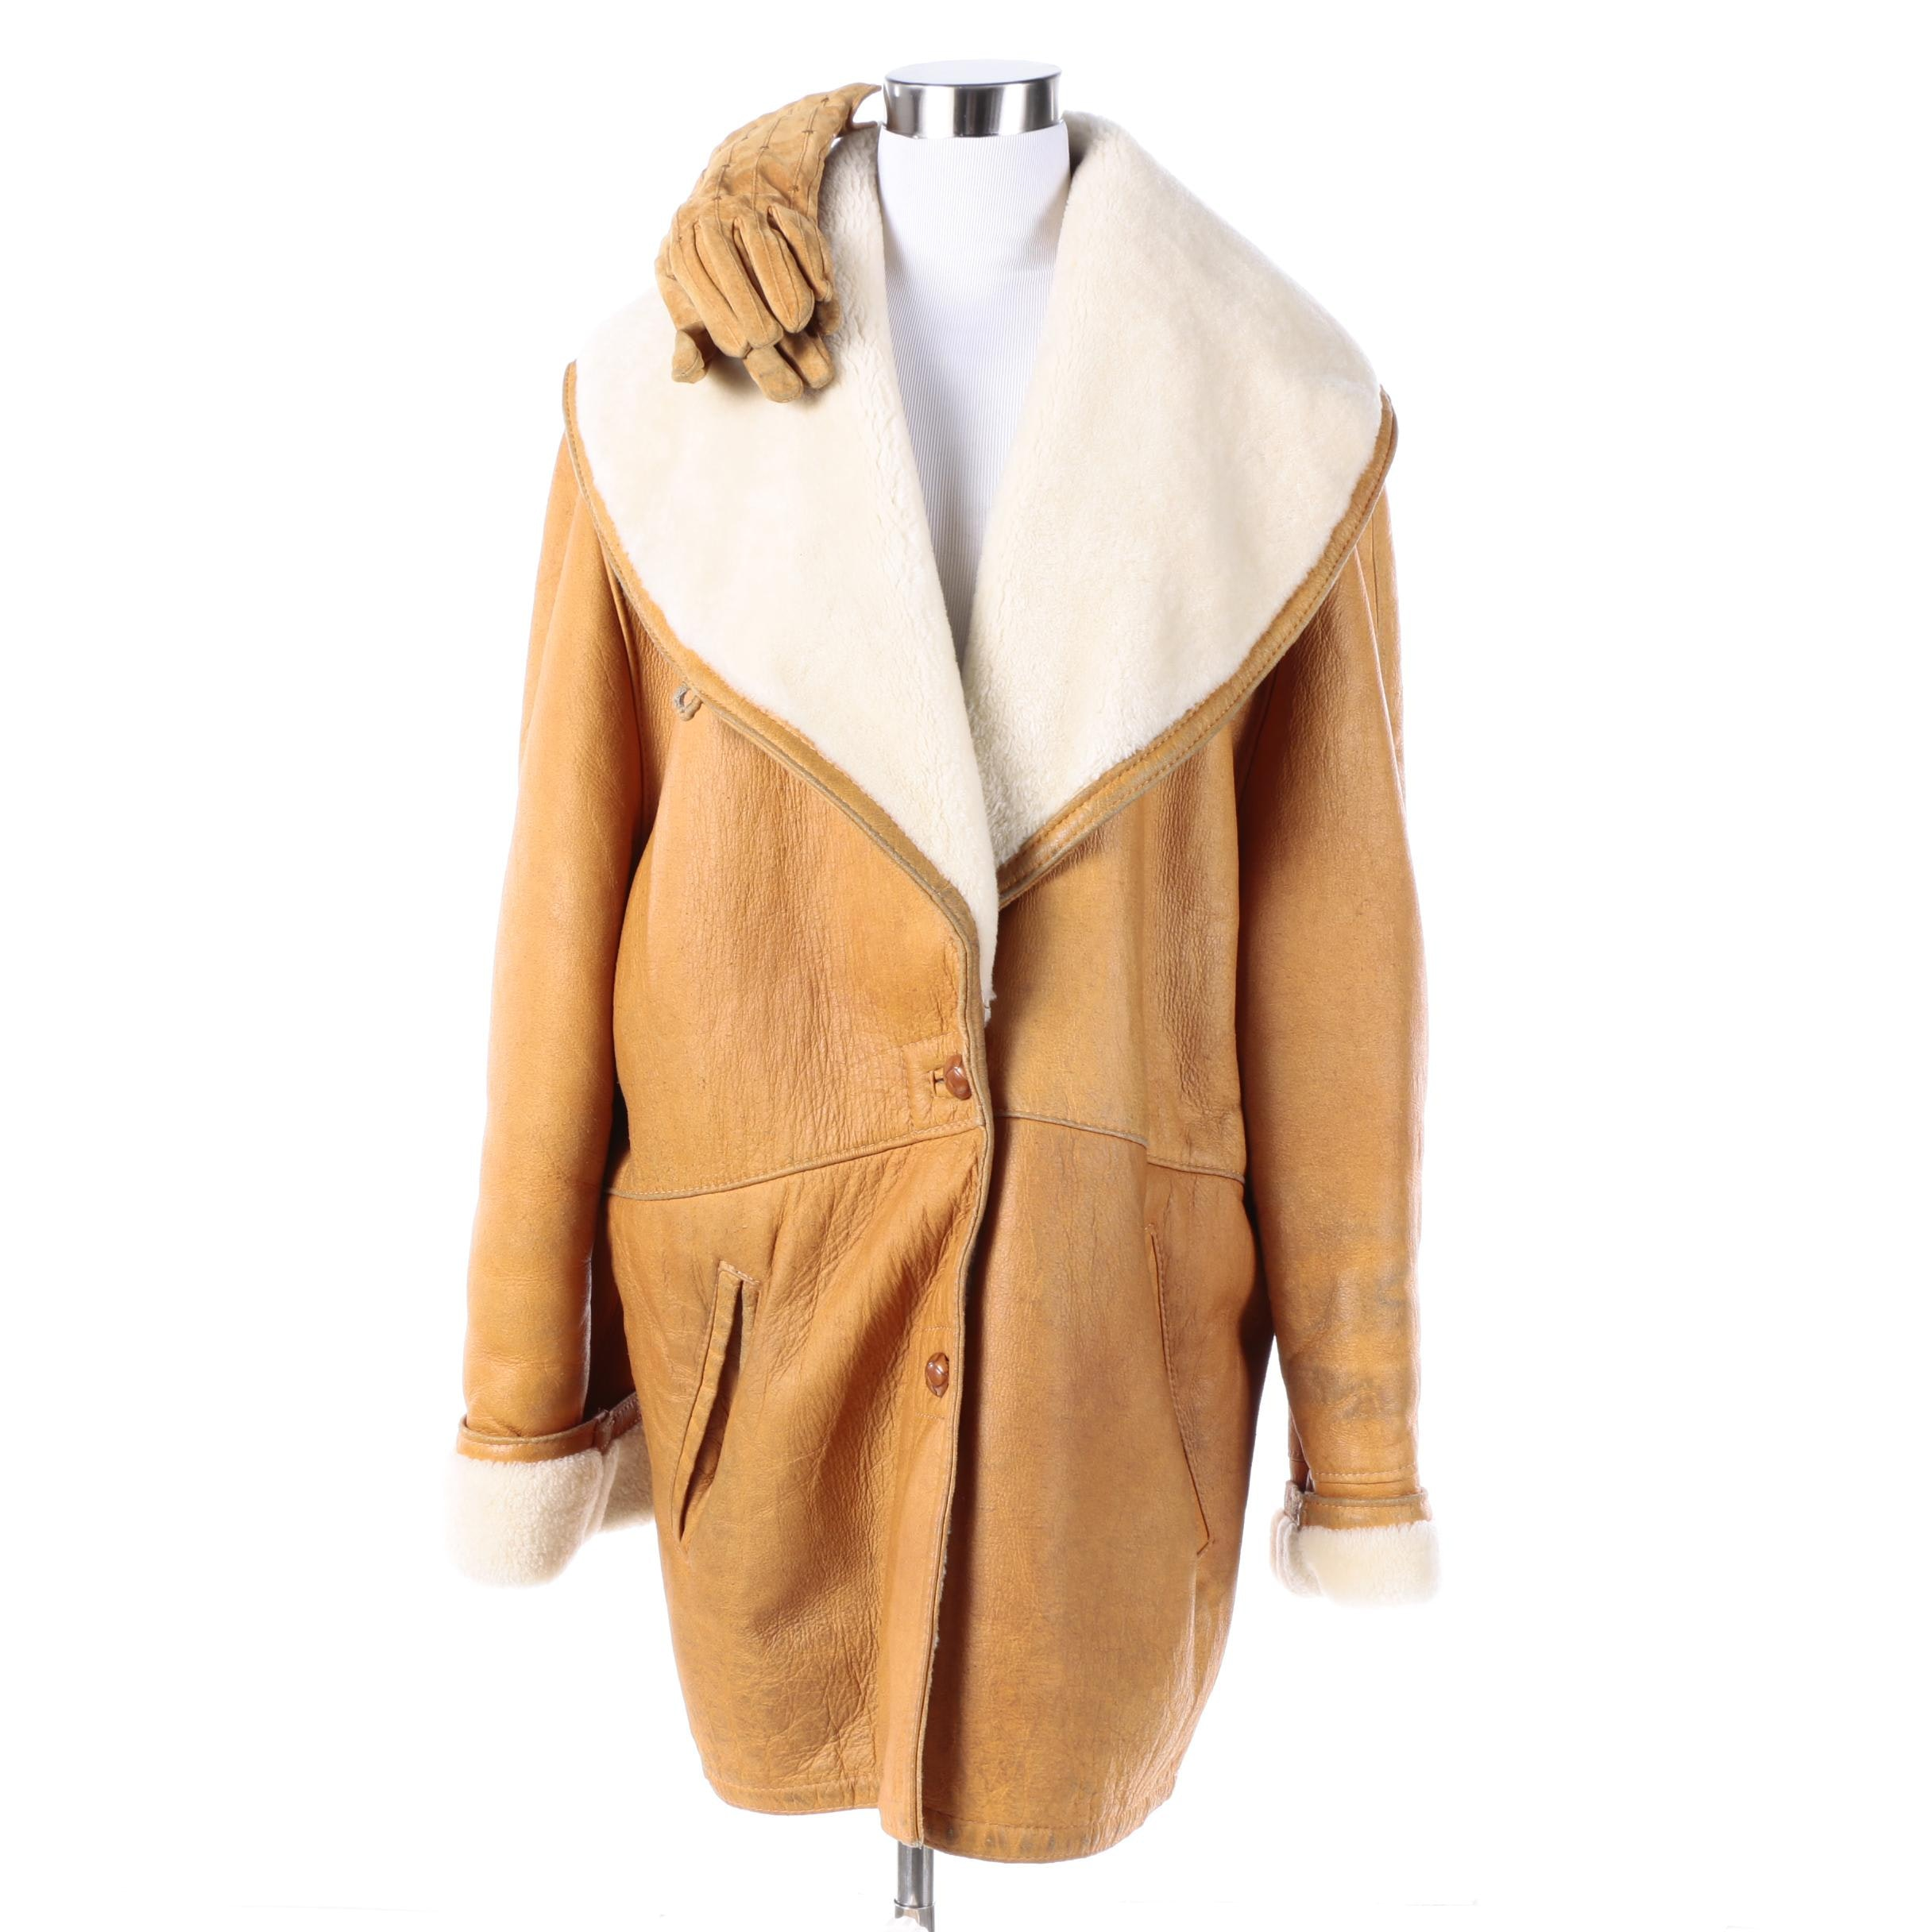 Women's Vintage Sheepskin Coat and Leather Gloves